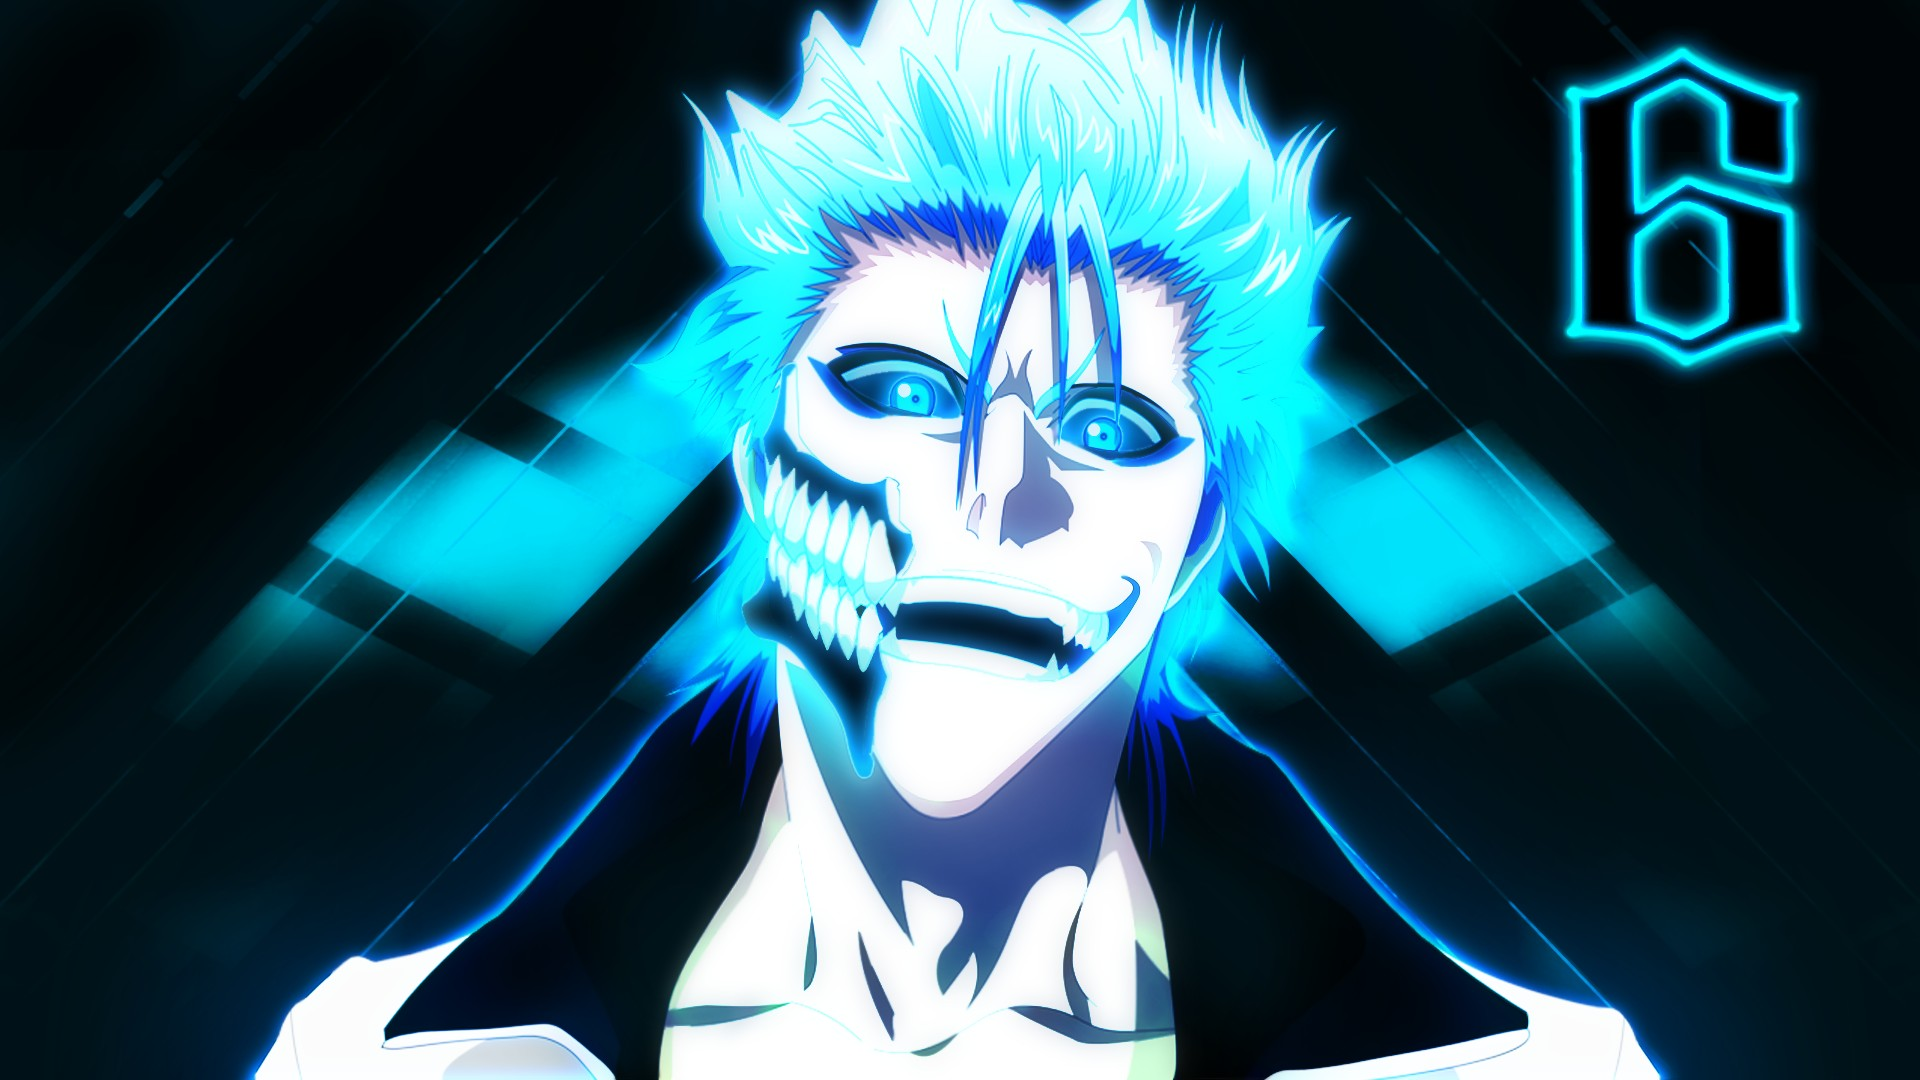 image - grimmjow.jeagerjaques.full.874072 | vs battles wiki